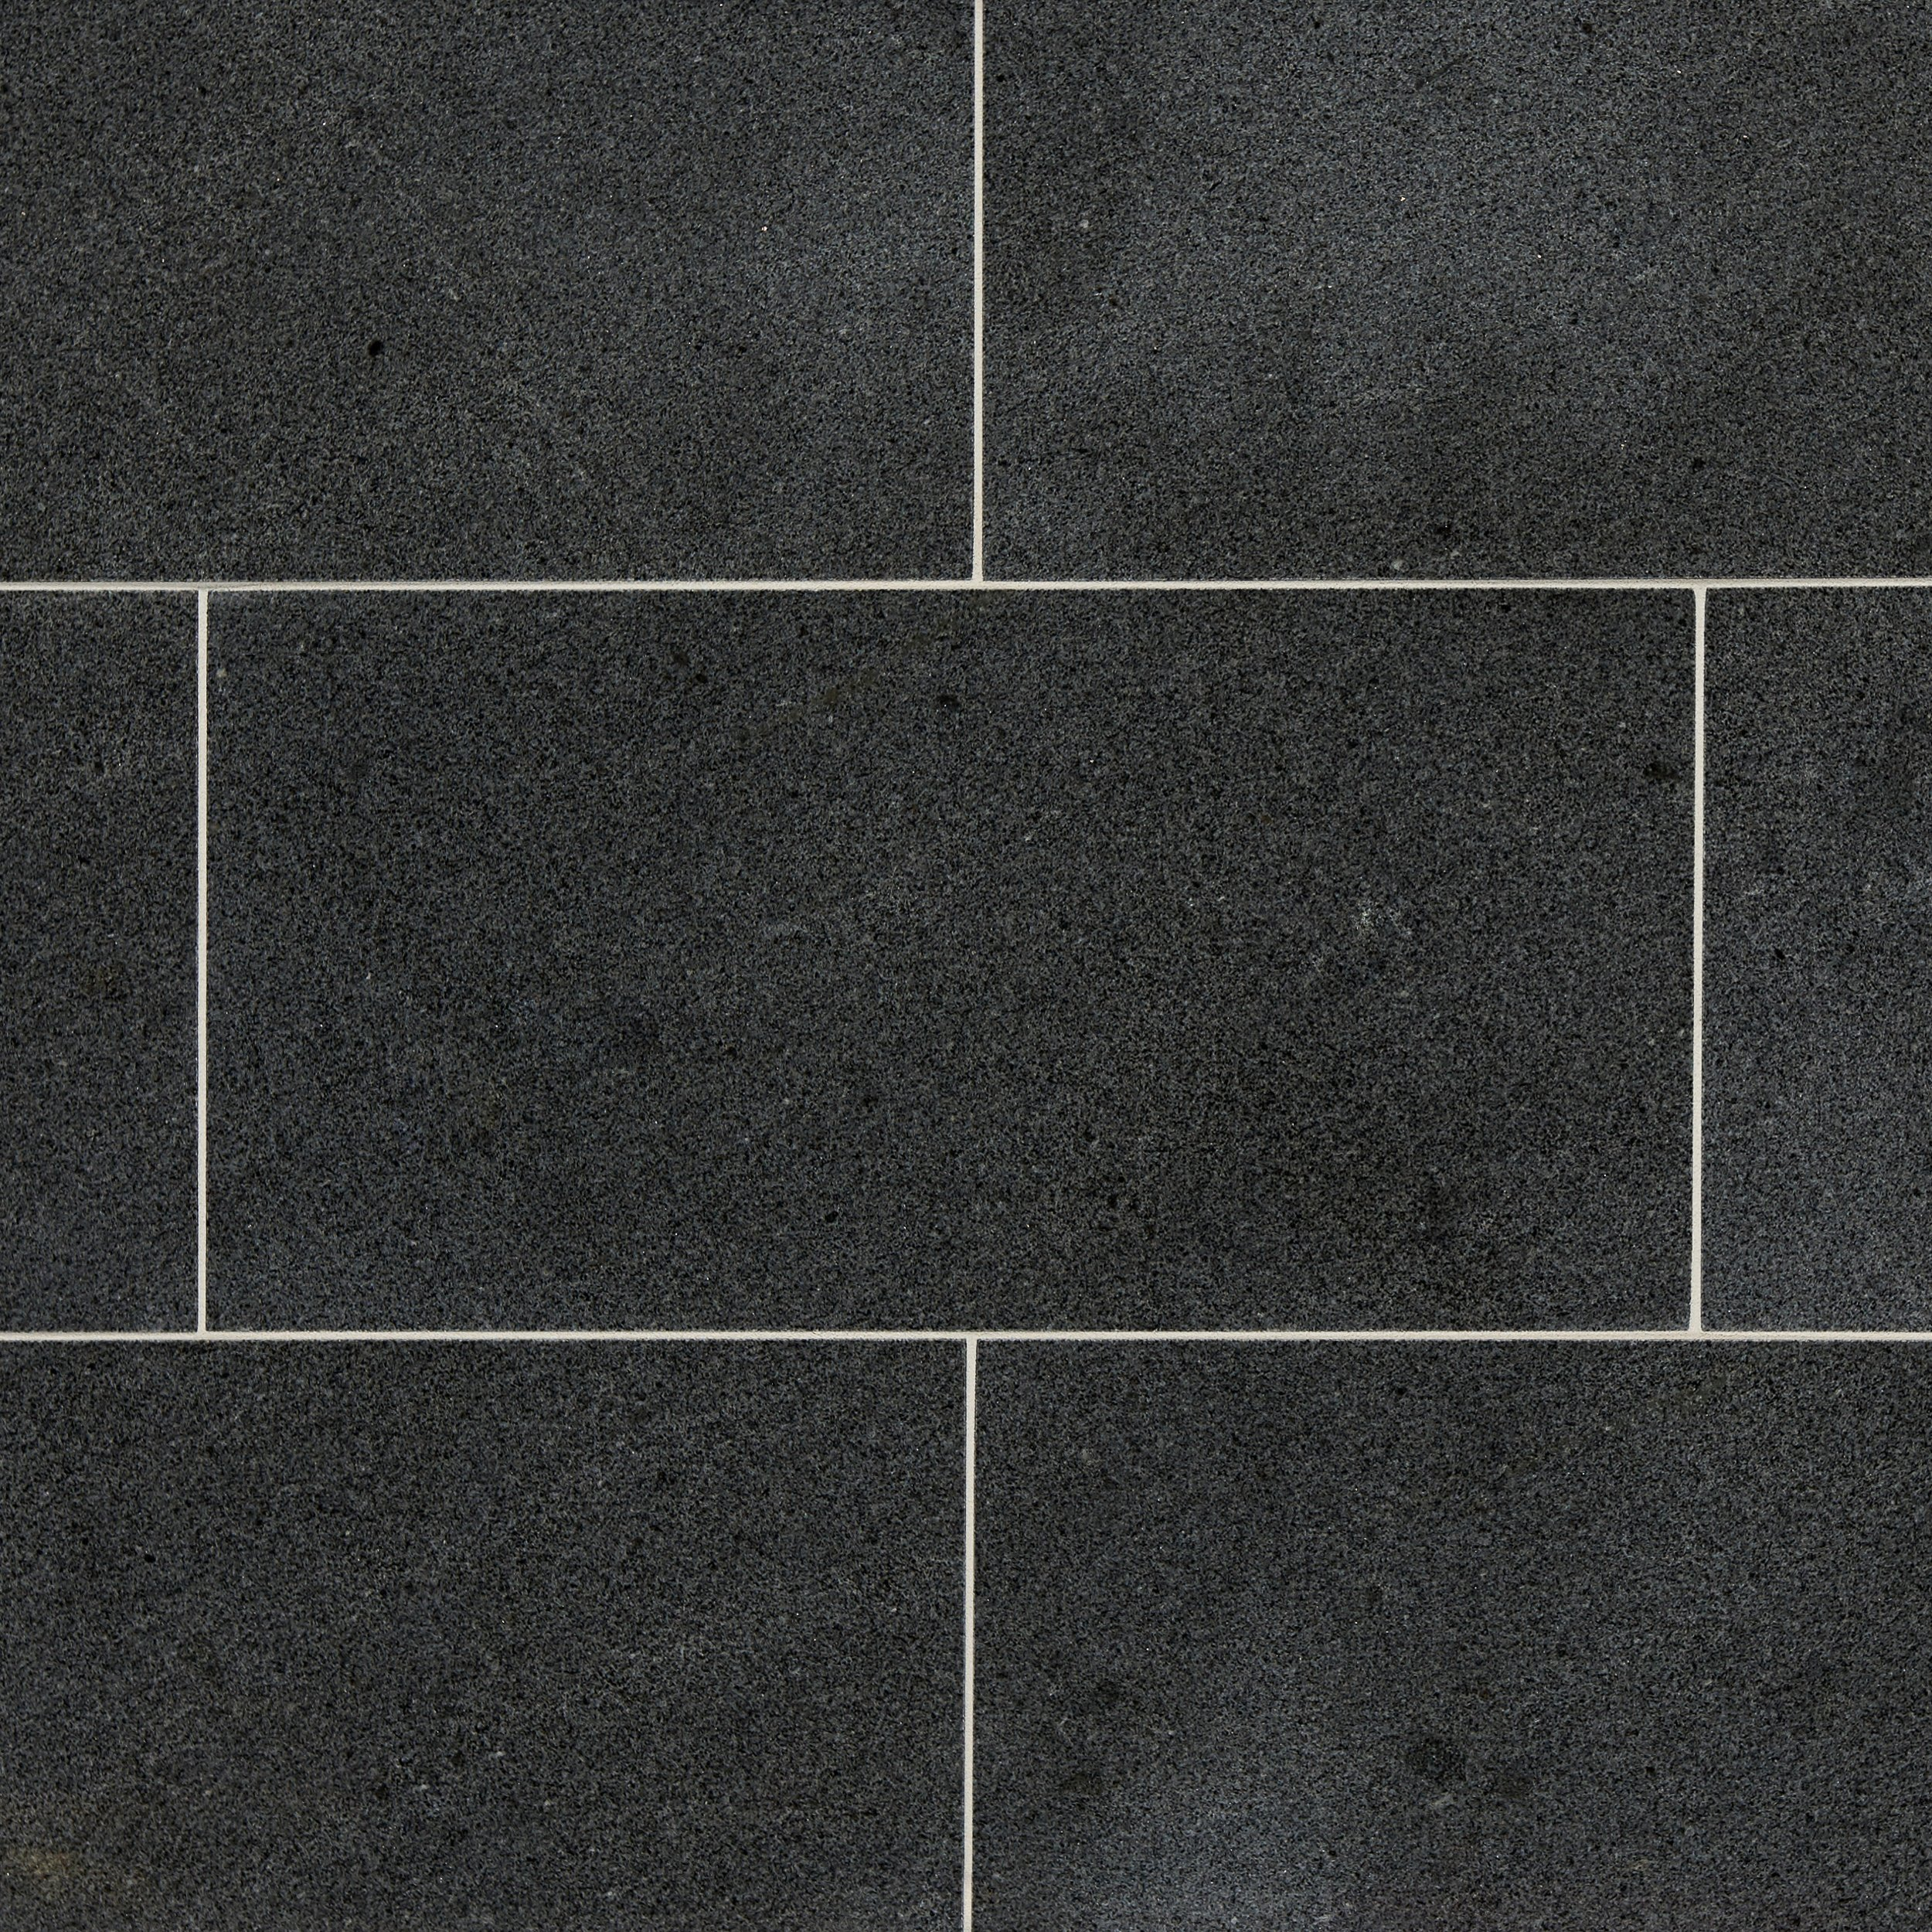 Granite Tile Floor Decor